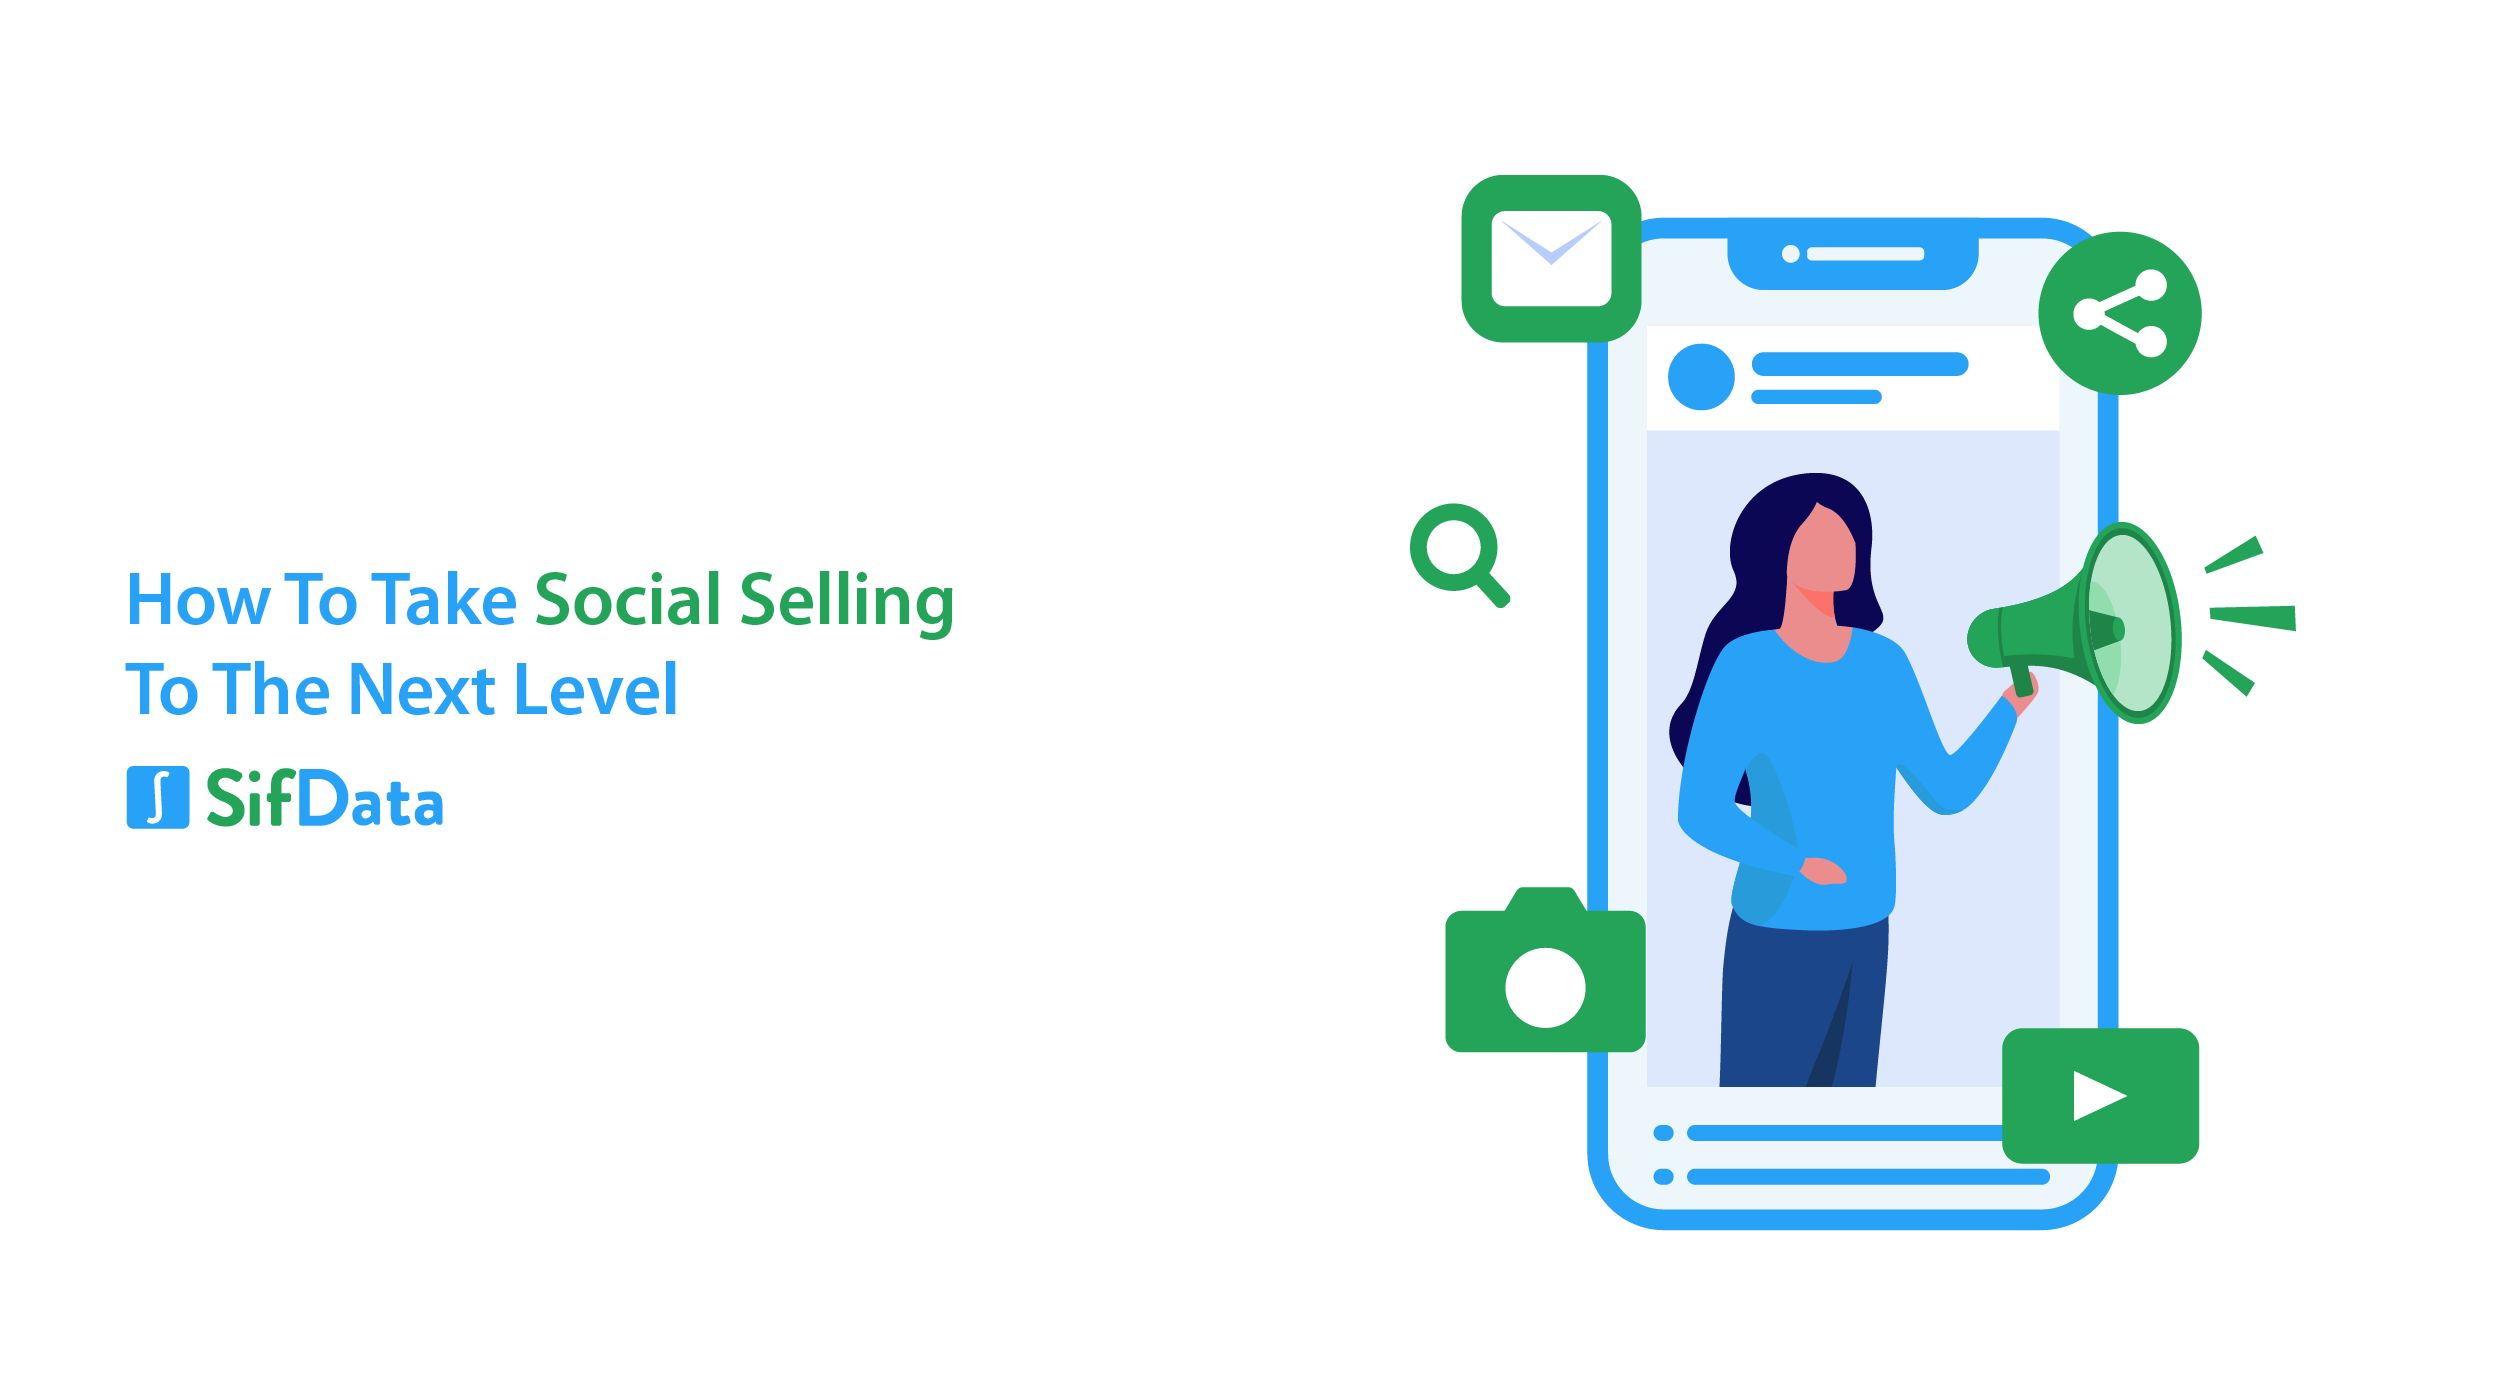 HOW TO TAKE SOCIAL SELLING TO THE NEXT LEVEL